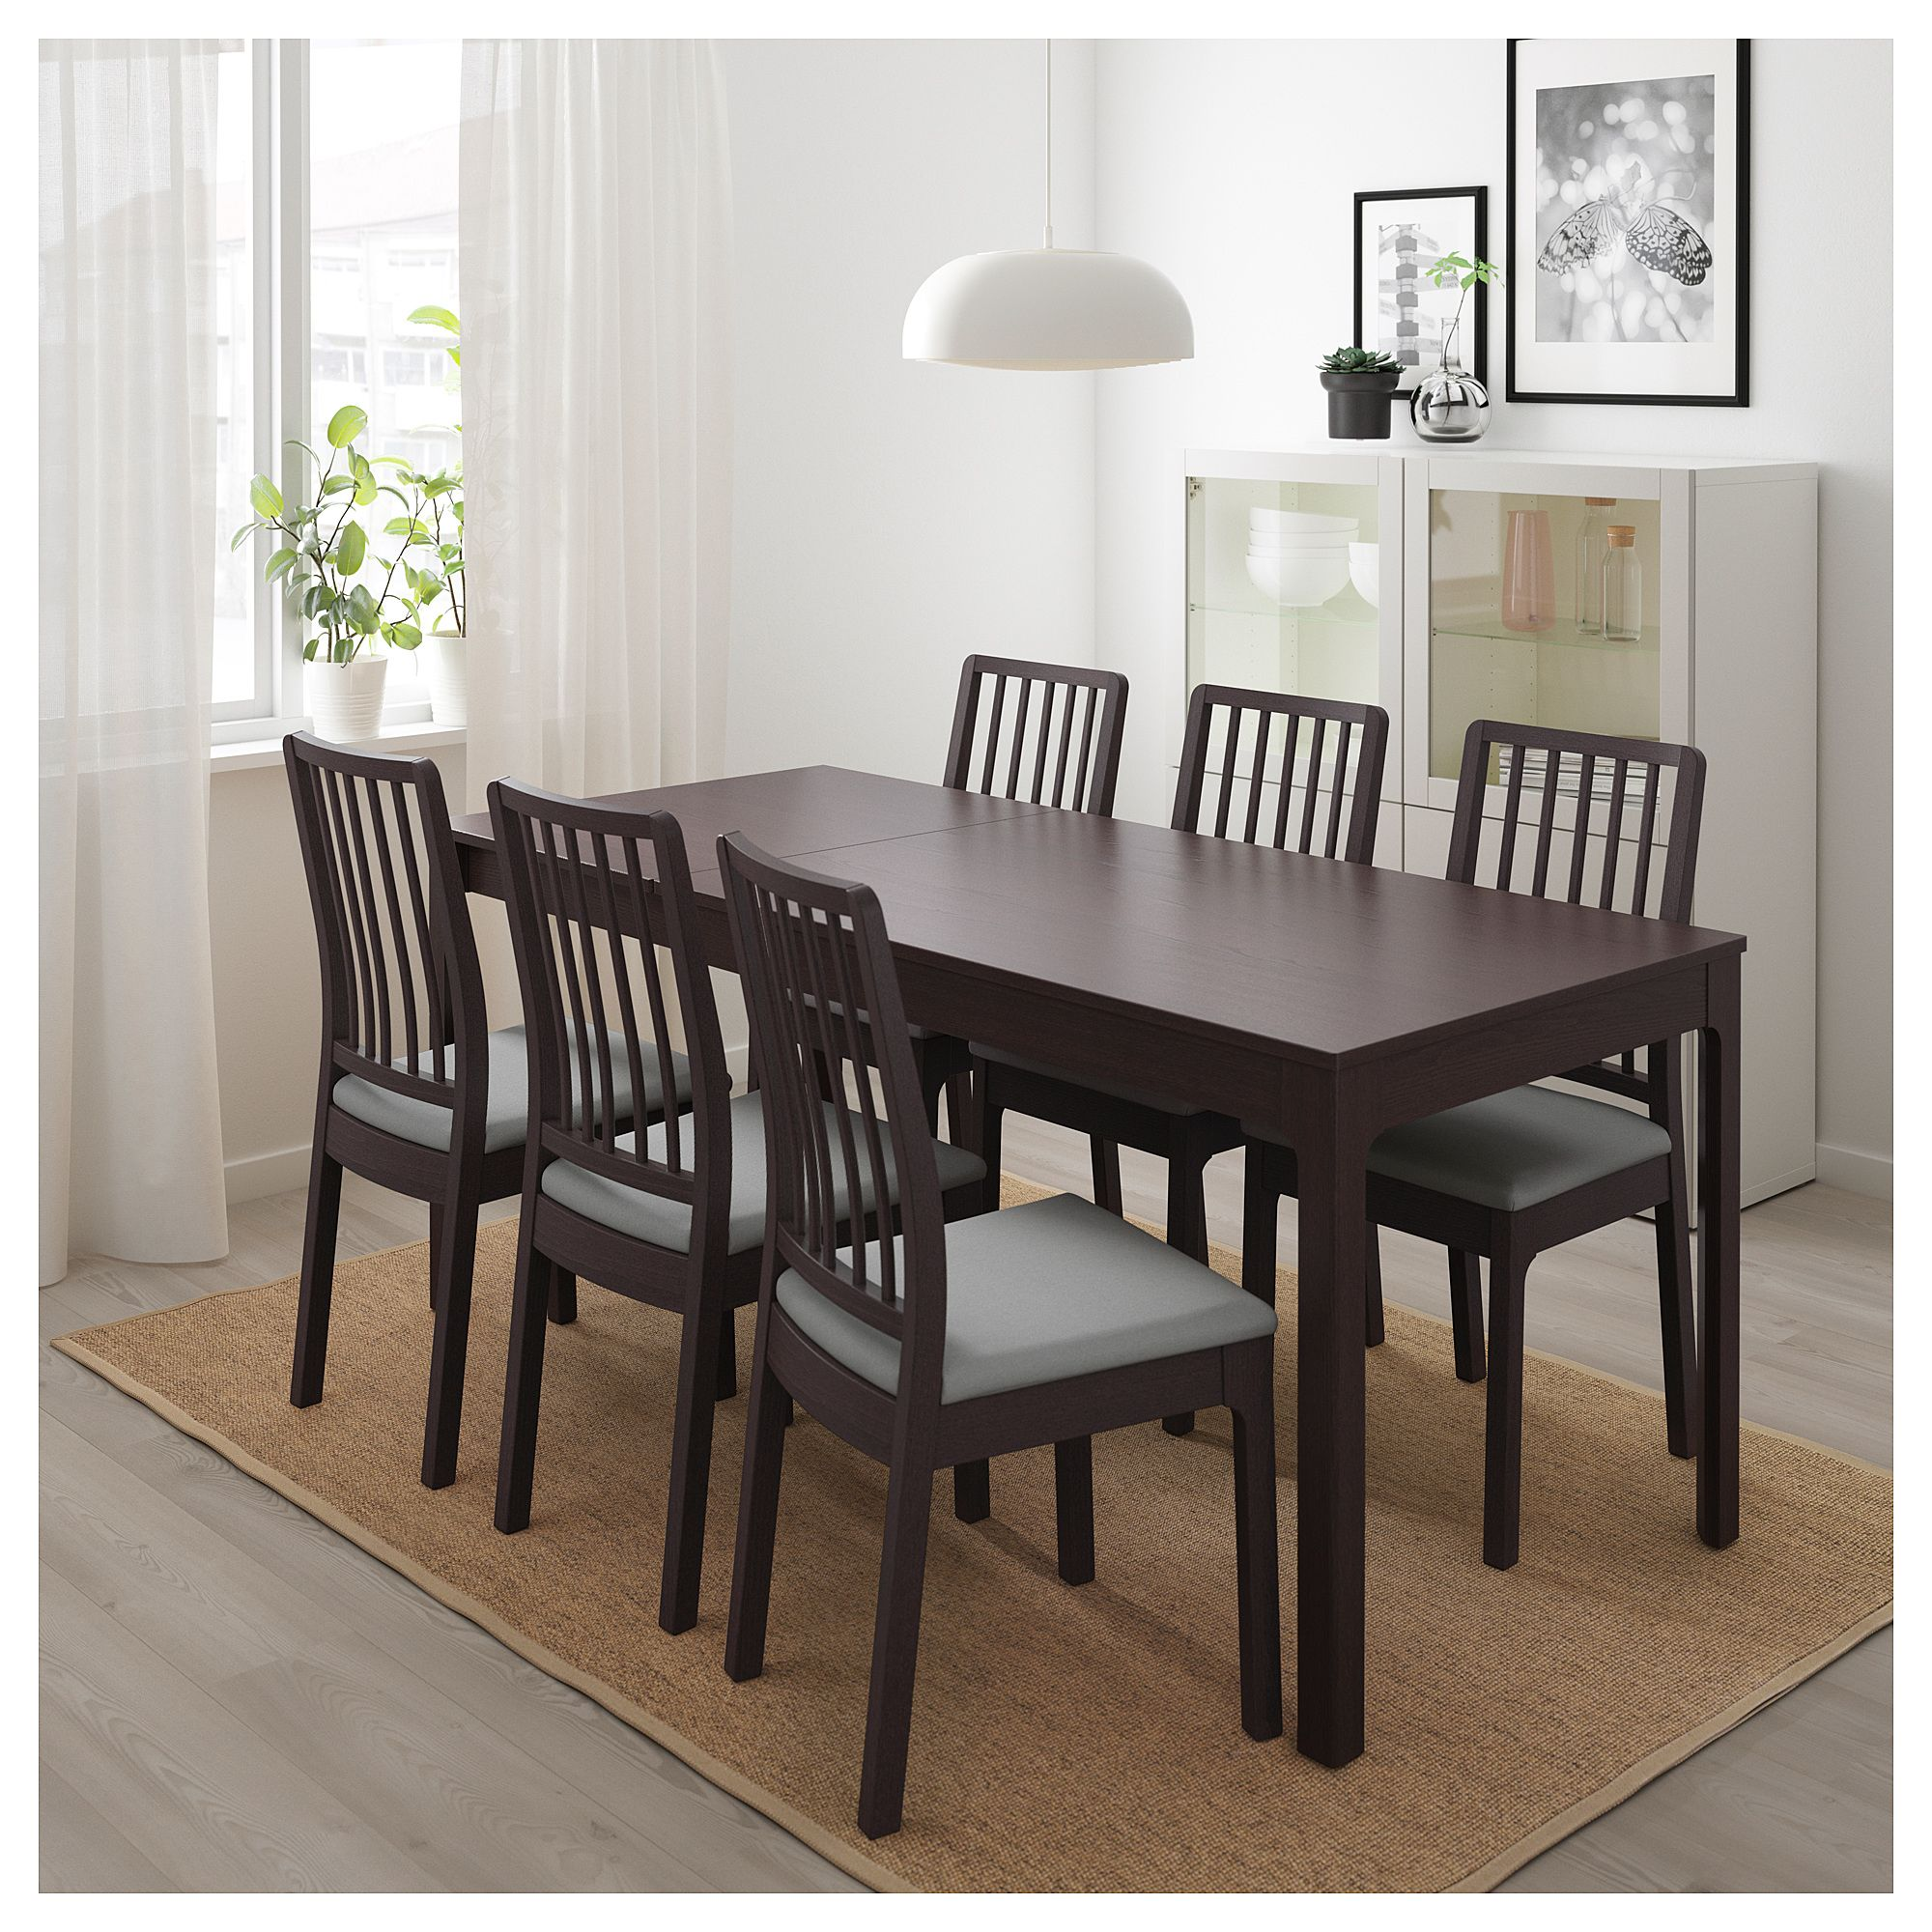 Ekedalen Extendable Table Dark Brown Dining Room Table Ikea